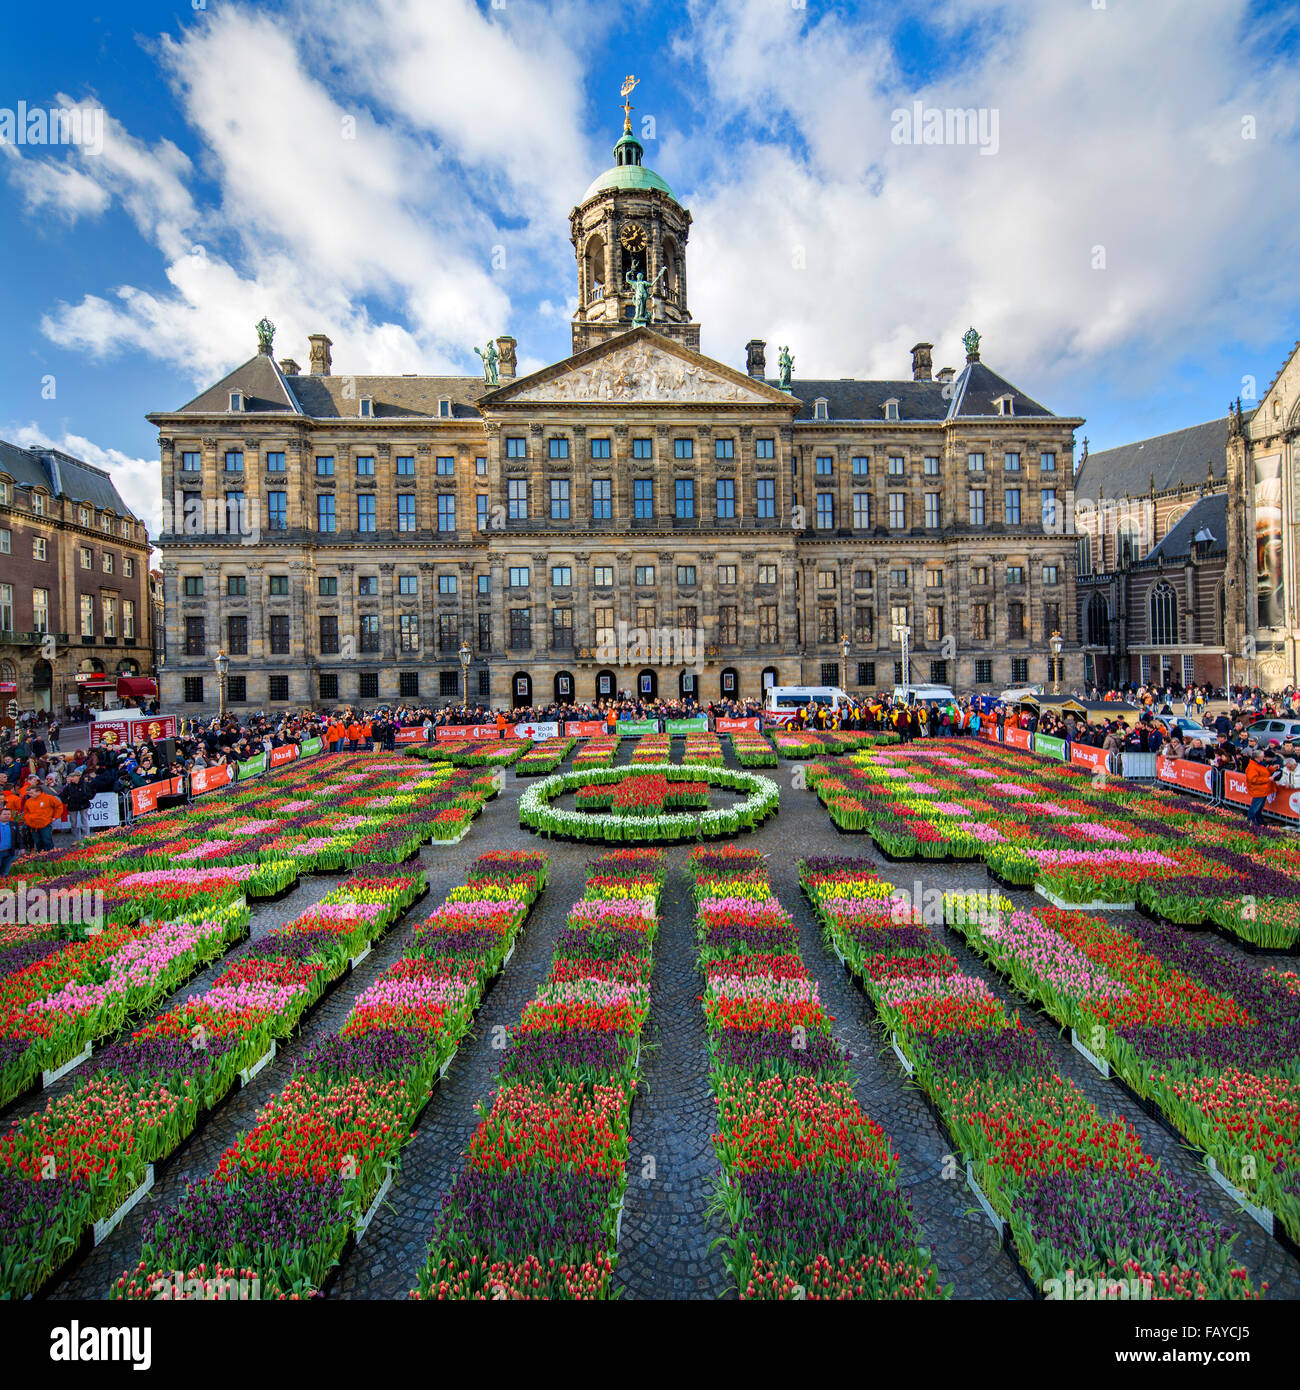 Netherlands amsterdam start of tulip season dam square royal netherlands amsterdam start of tulip season dam square royal palace people can pick the tulips for free national tulip day publicscrutiny Choice Image